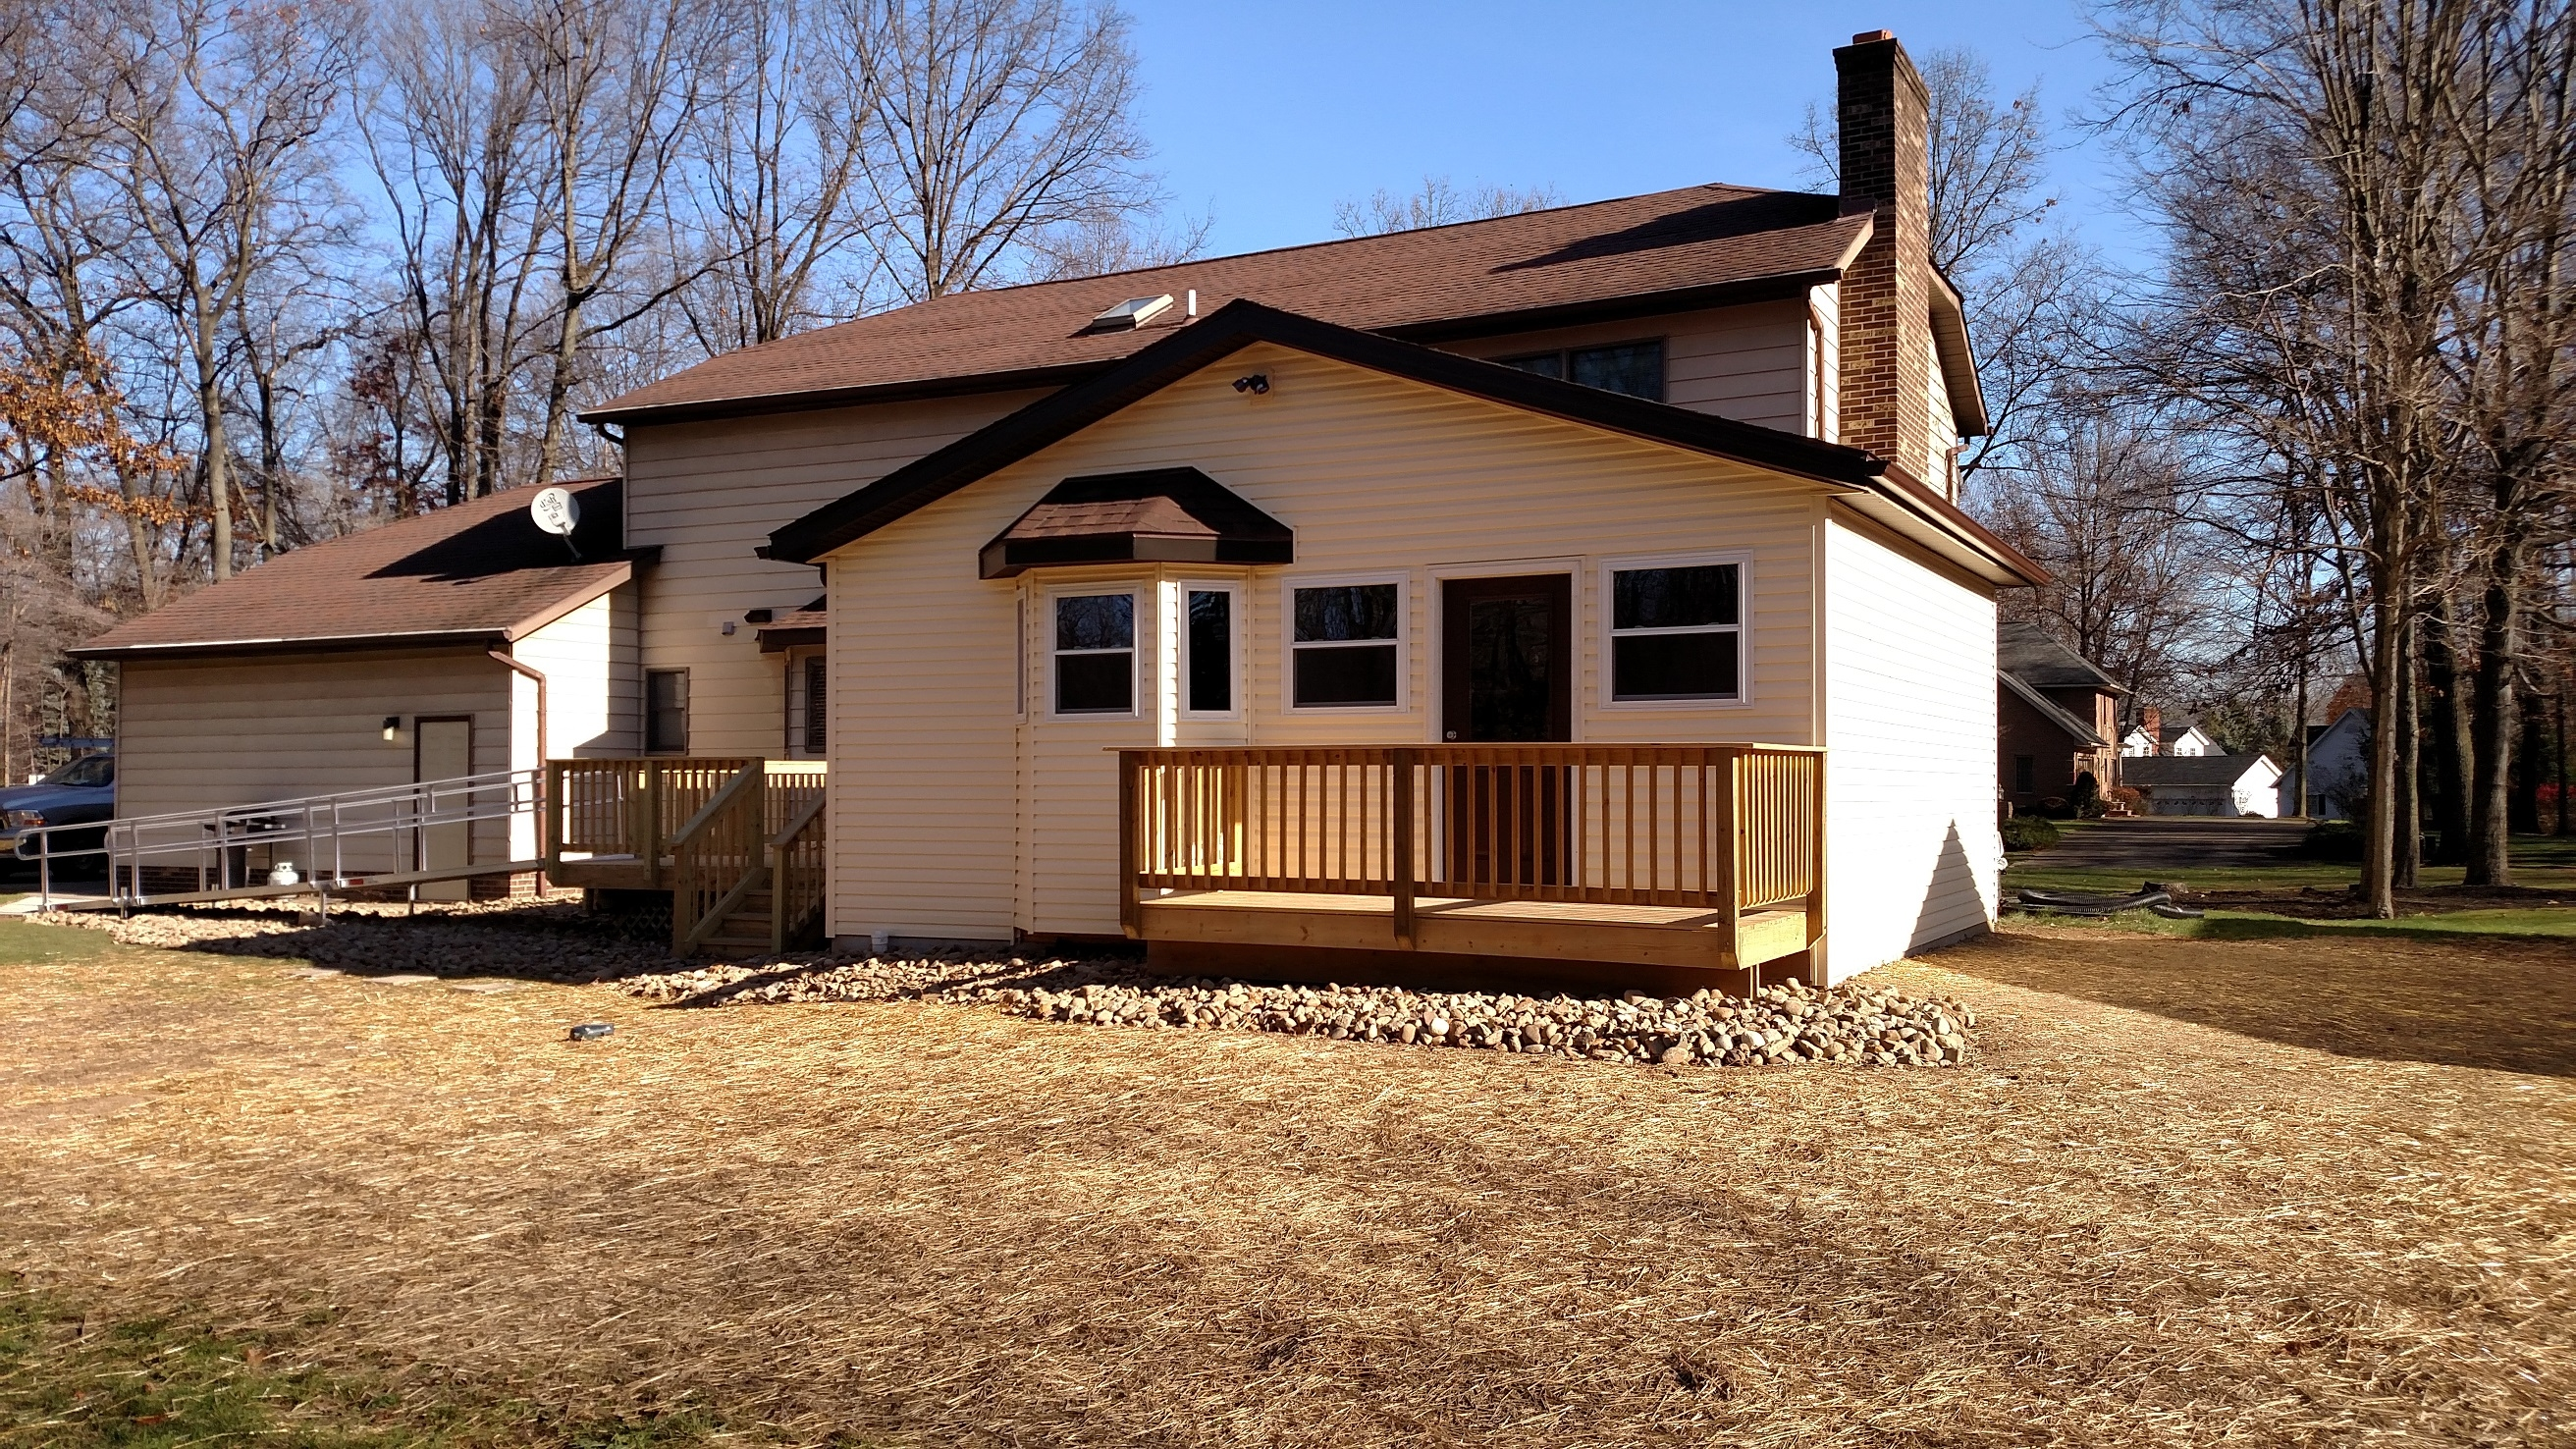 Wsc construction and restoration in canton oh 44721 for Home builders canton ohio